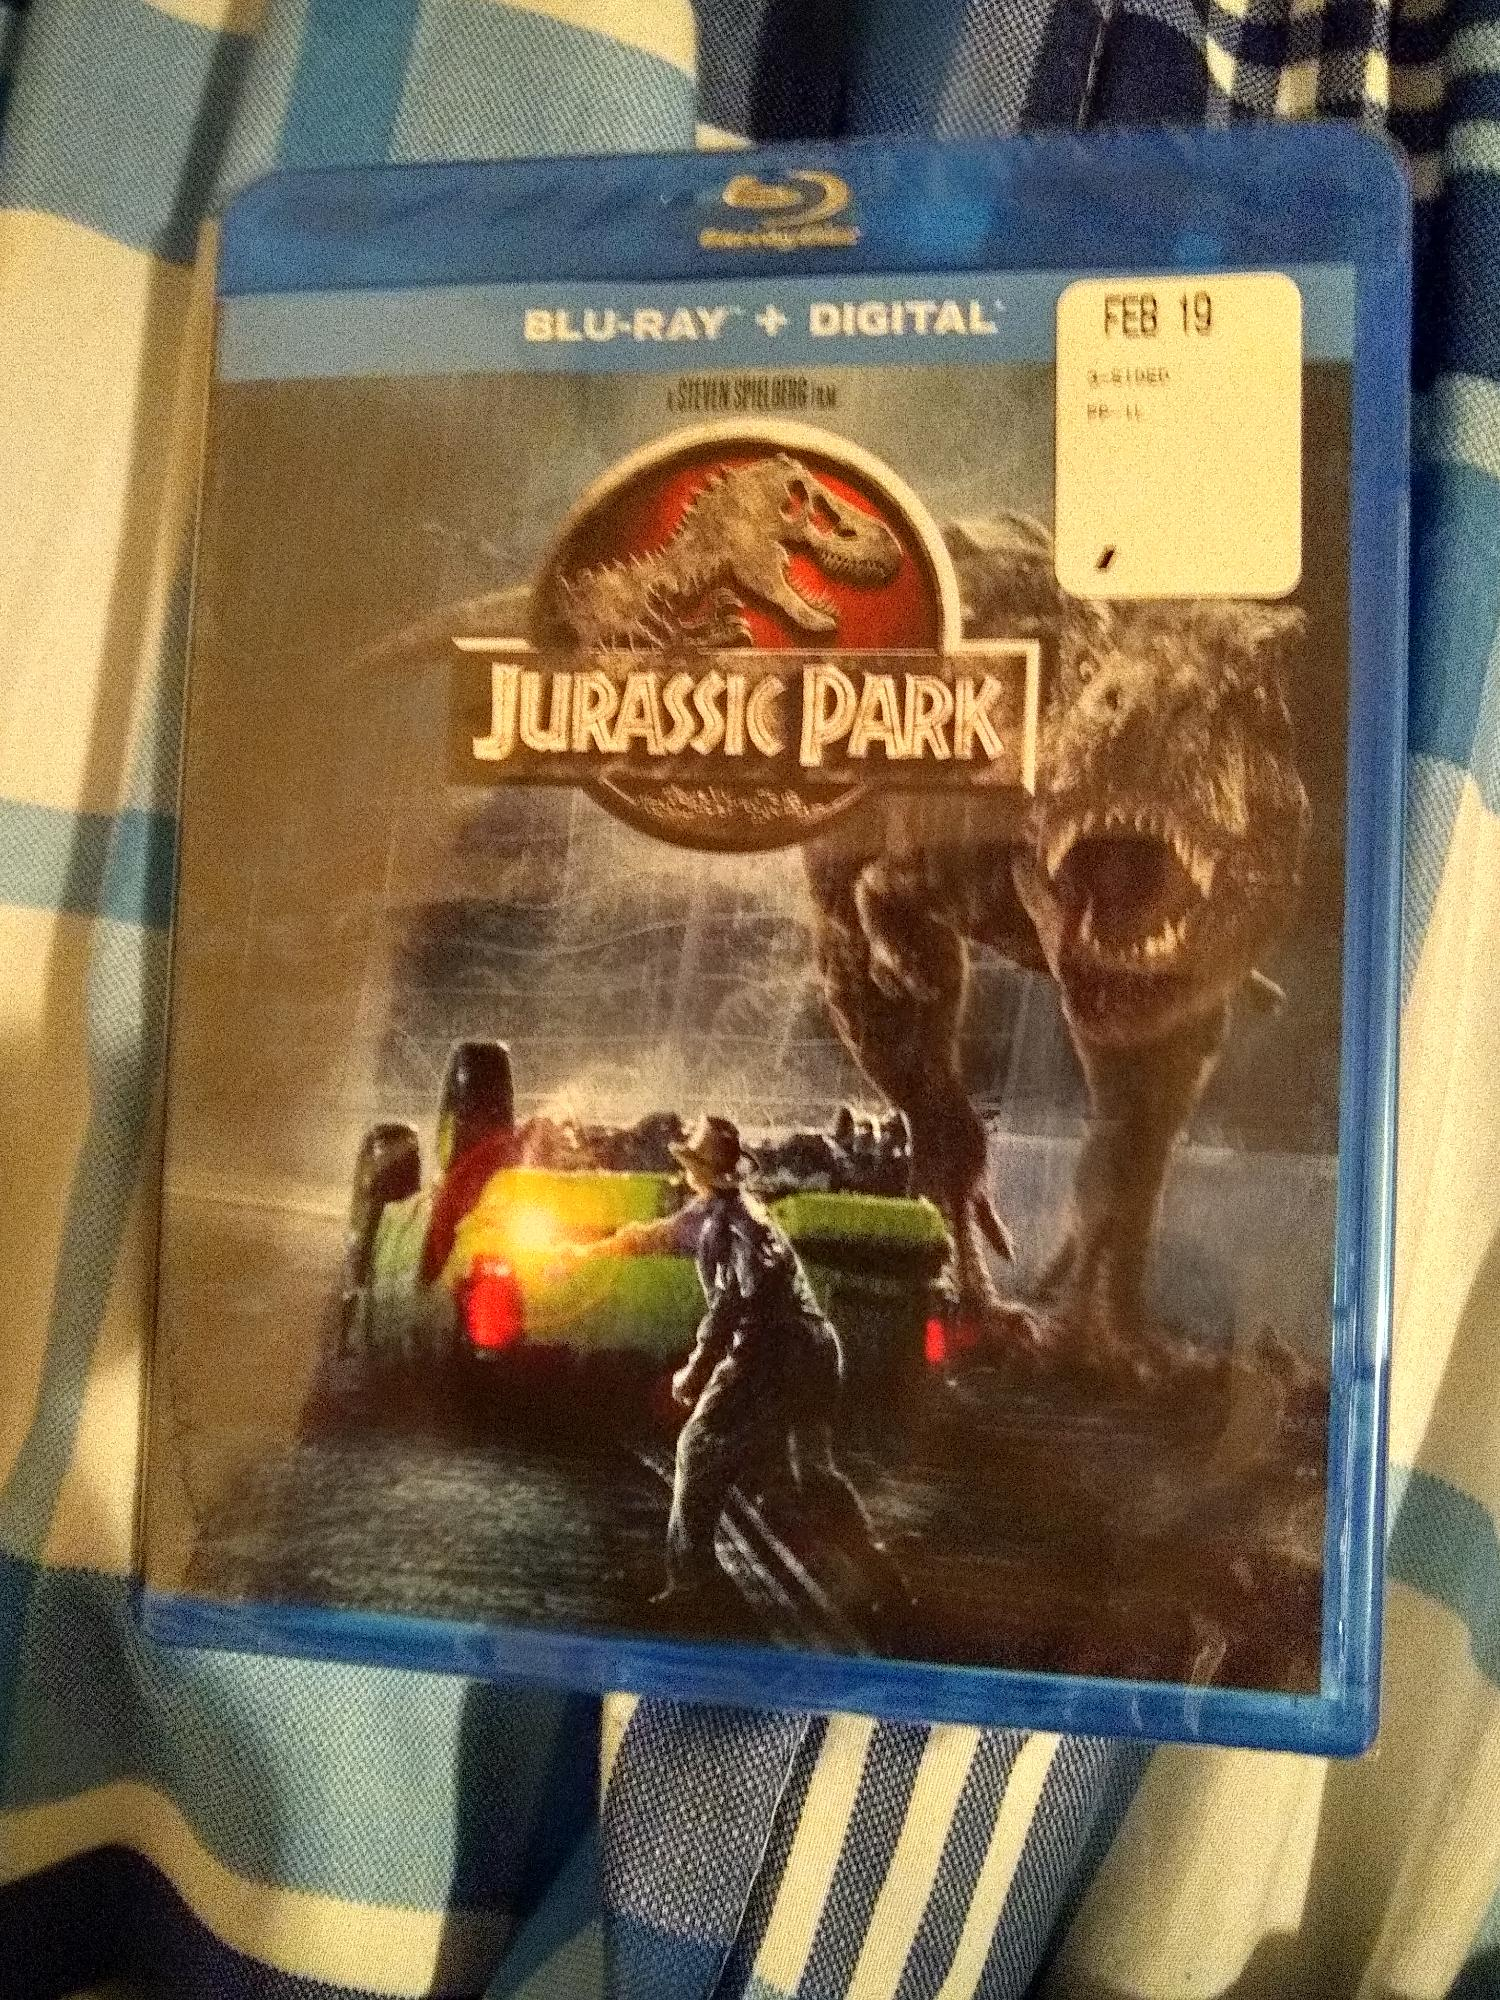 I bought the Original Jurassic Park Movie on Blu-ray at Wal-Mart today